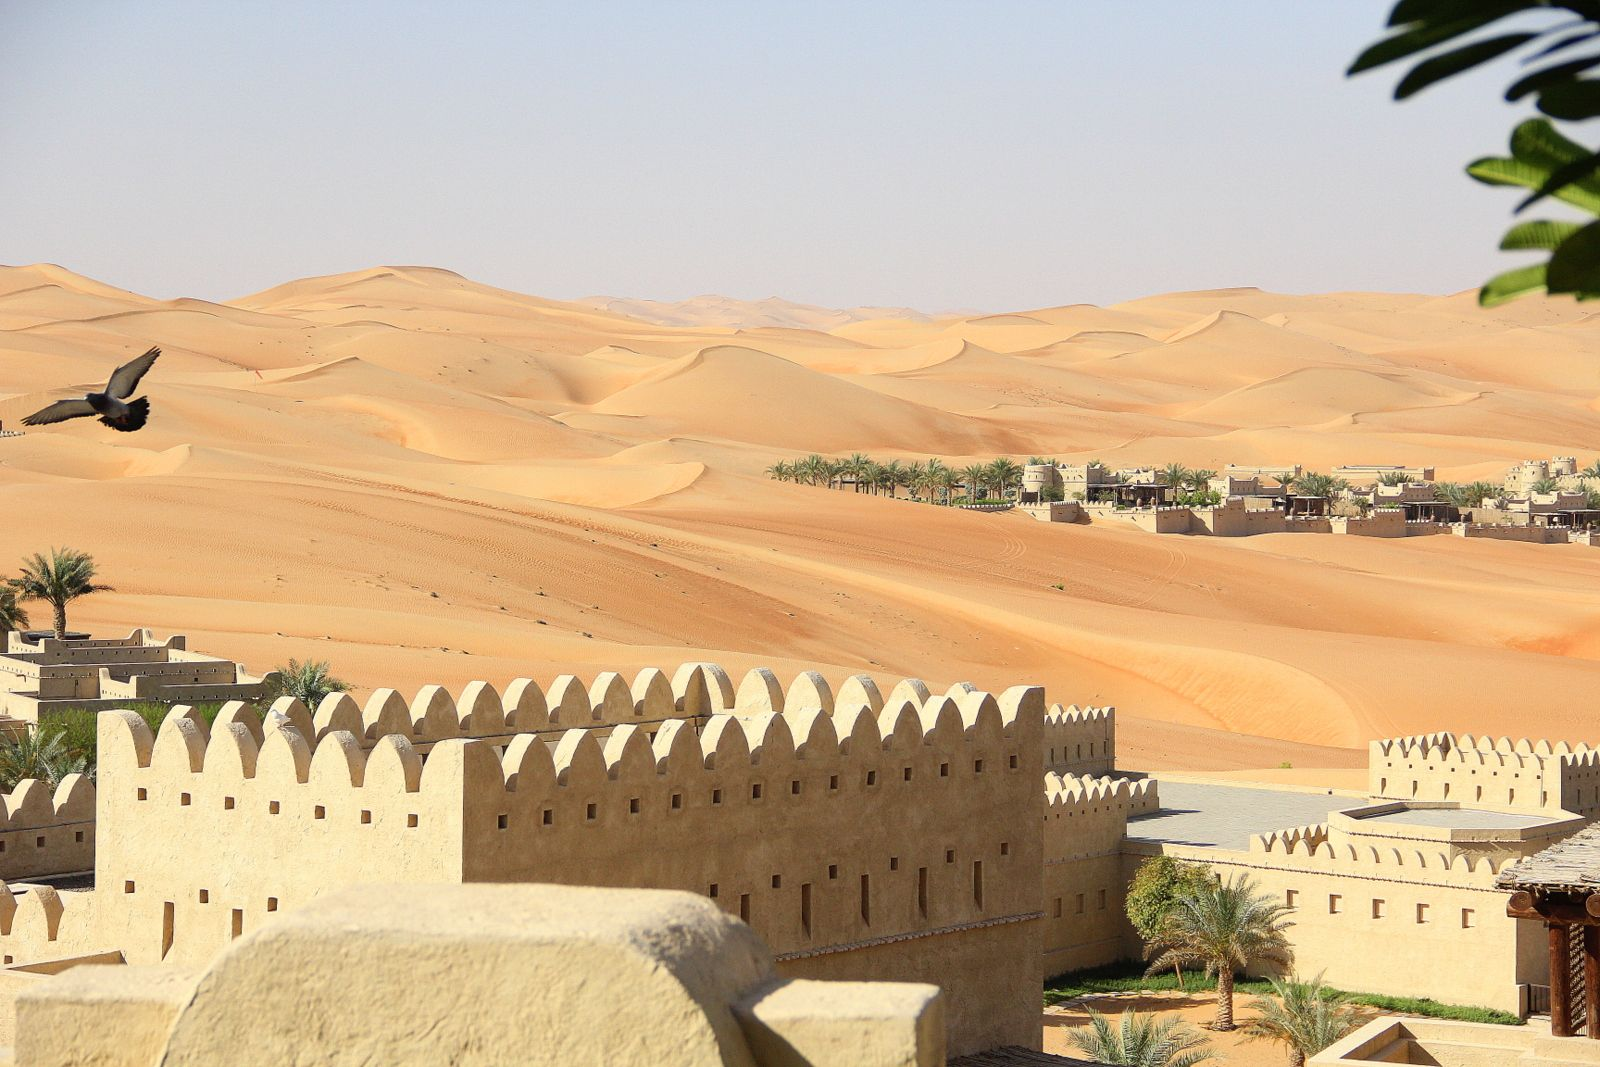 persian desert - Google Search